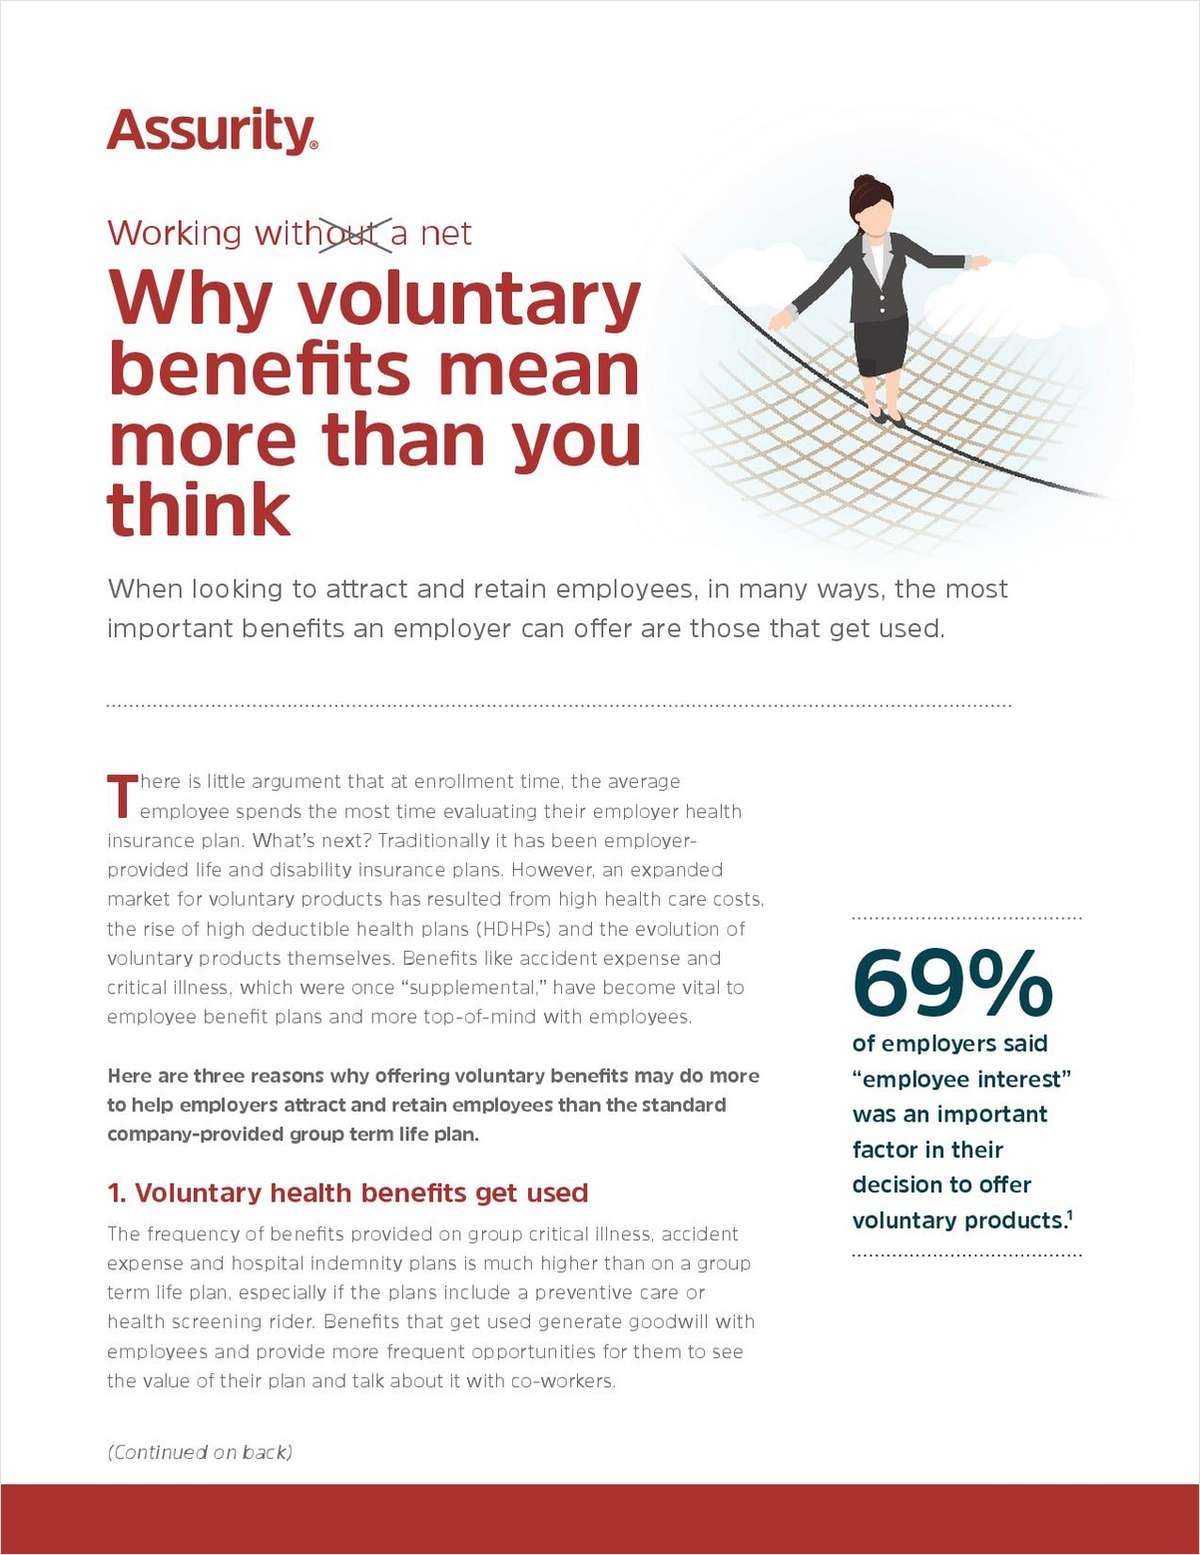 Why Voluntary Benefits Mean More Than You Think